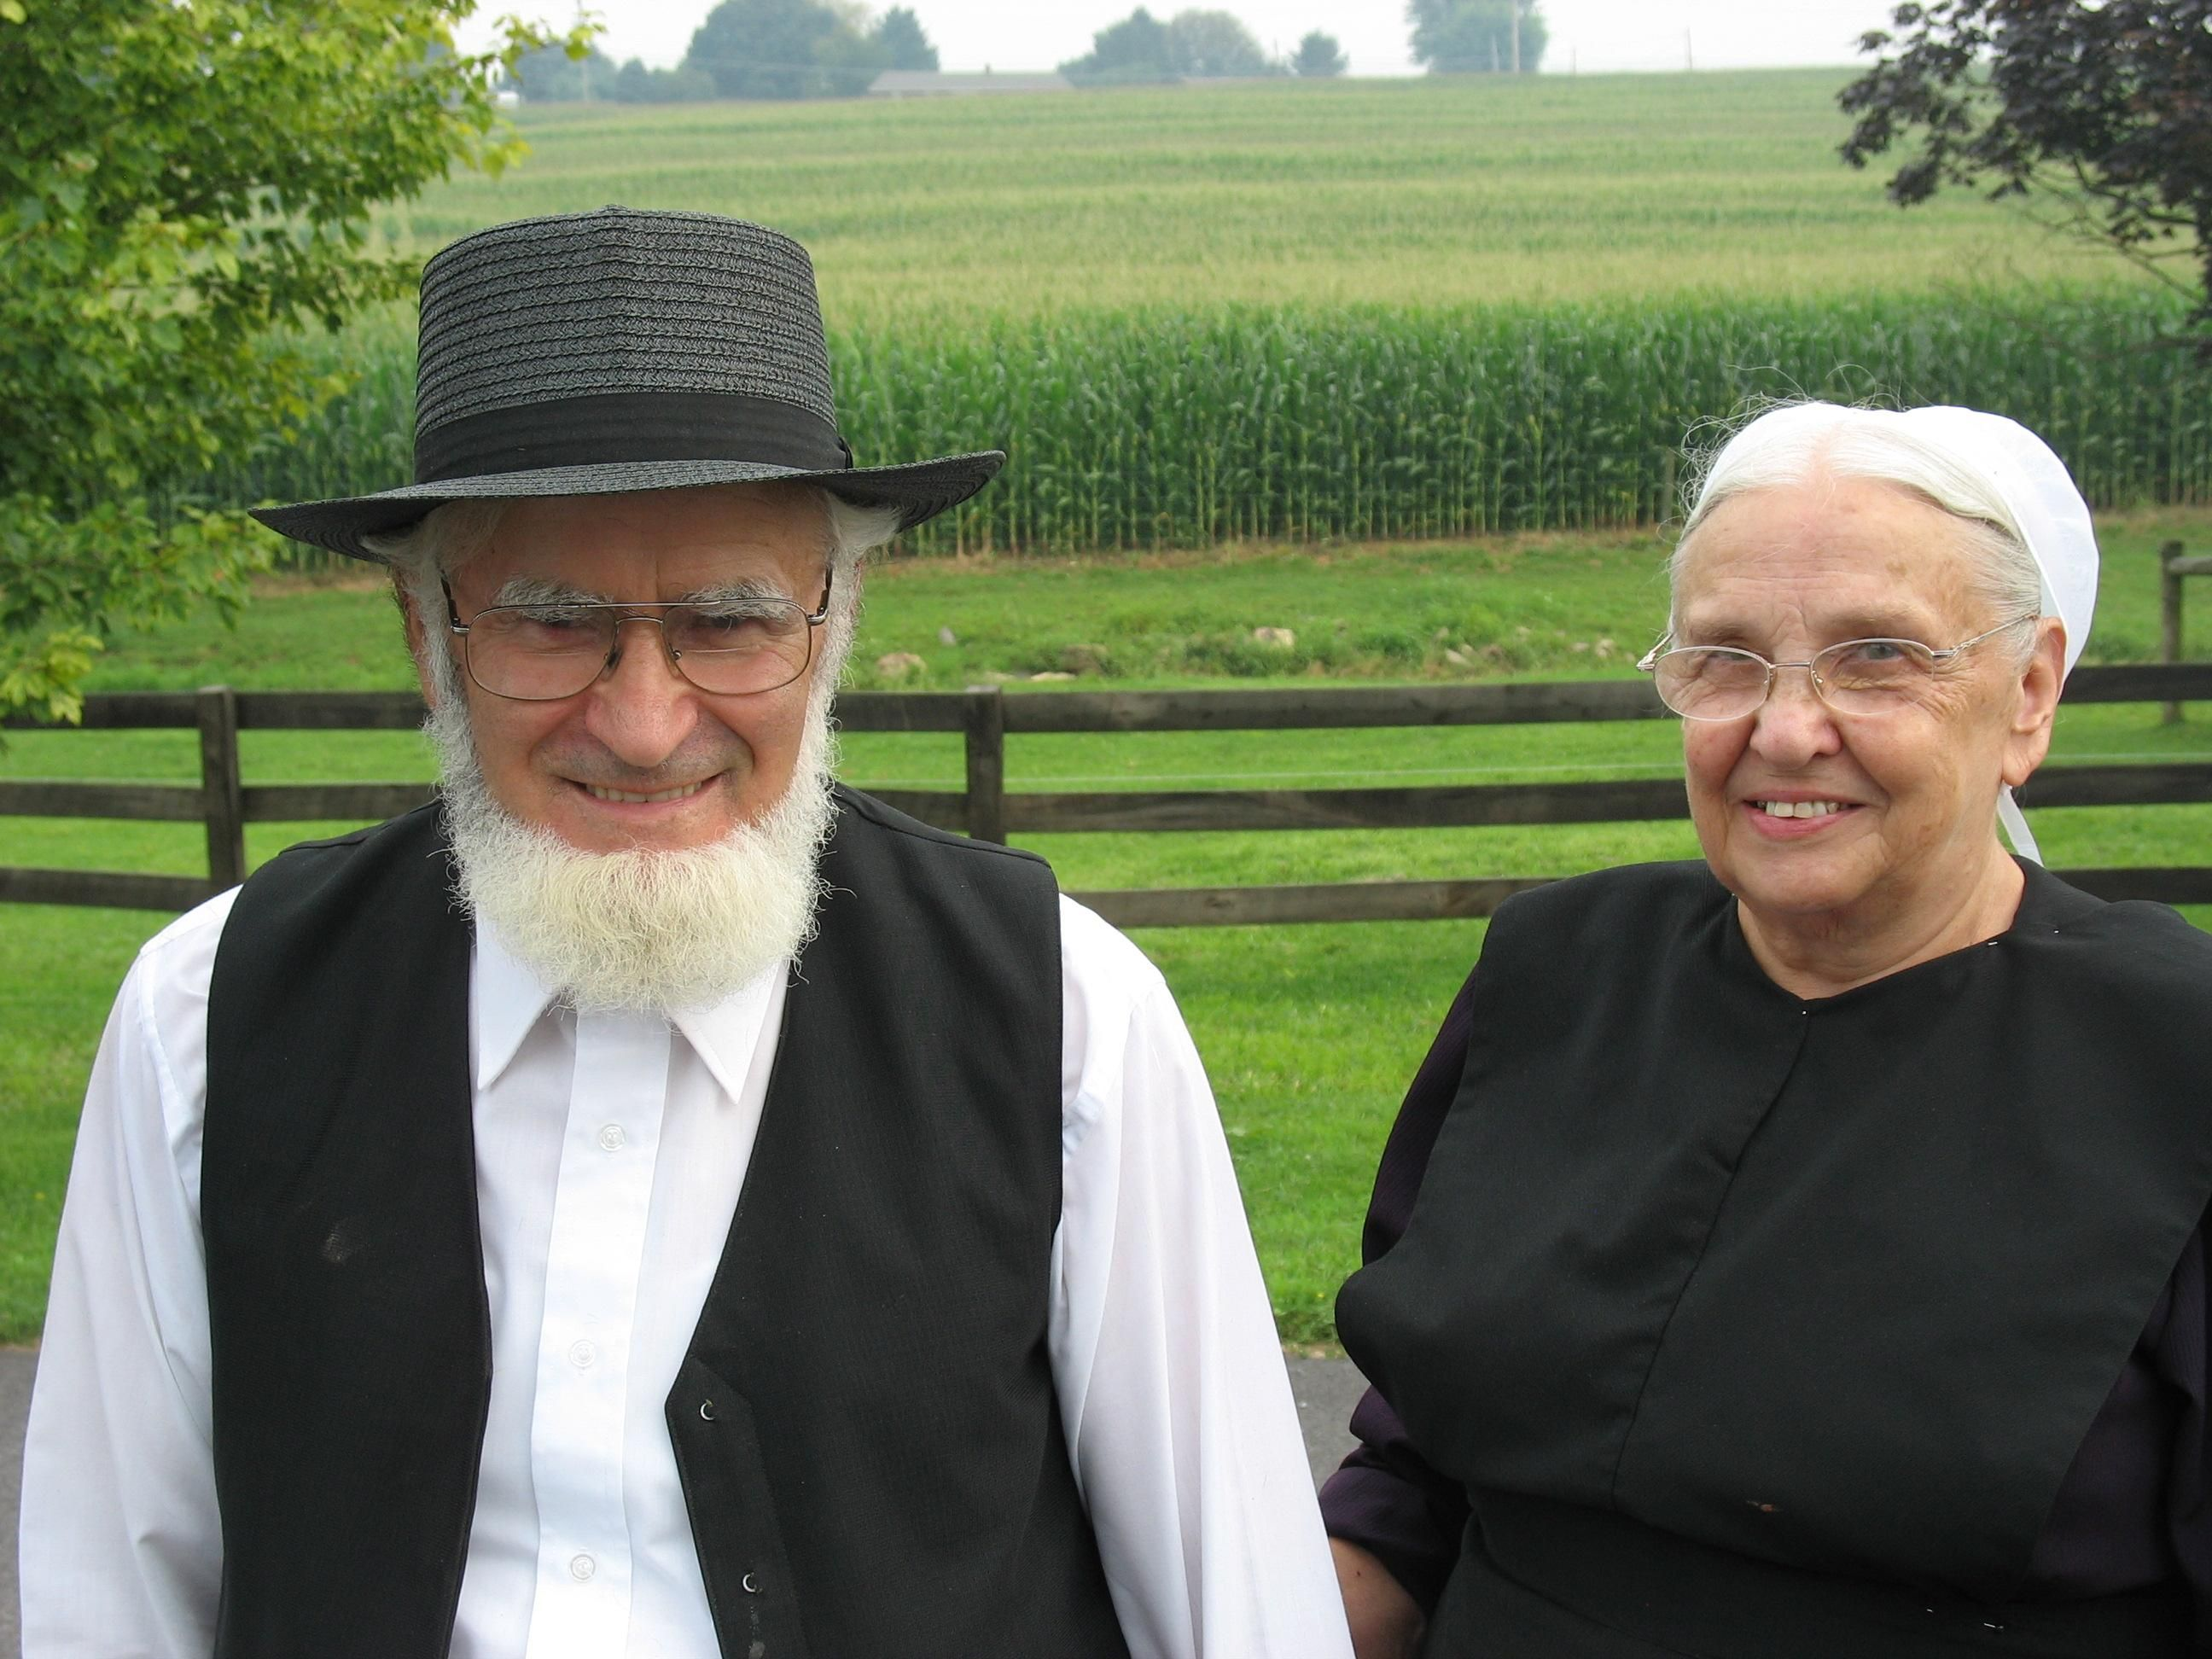 a comparison of the chasidim and old order amish Chasidim and old order amish: a comparison the two groups to be examined are the chasidim and the old order amish we will begin with a brief look at the history of each group the chasidim, or hasidim, as more commonly known.